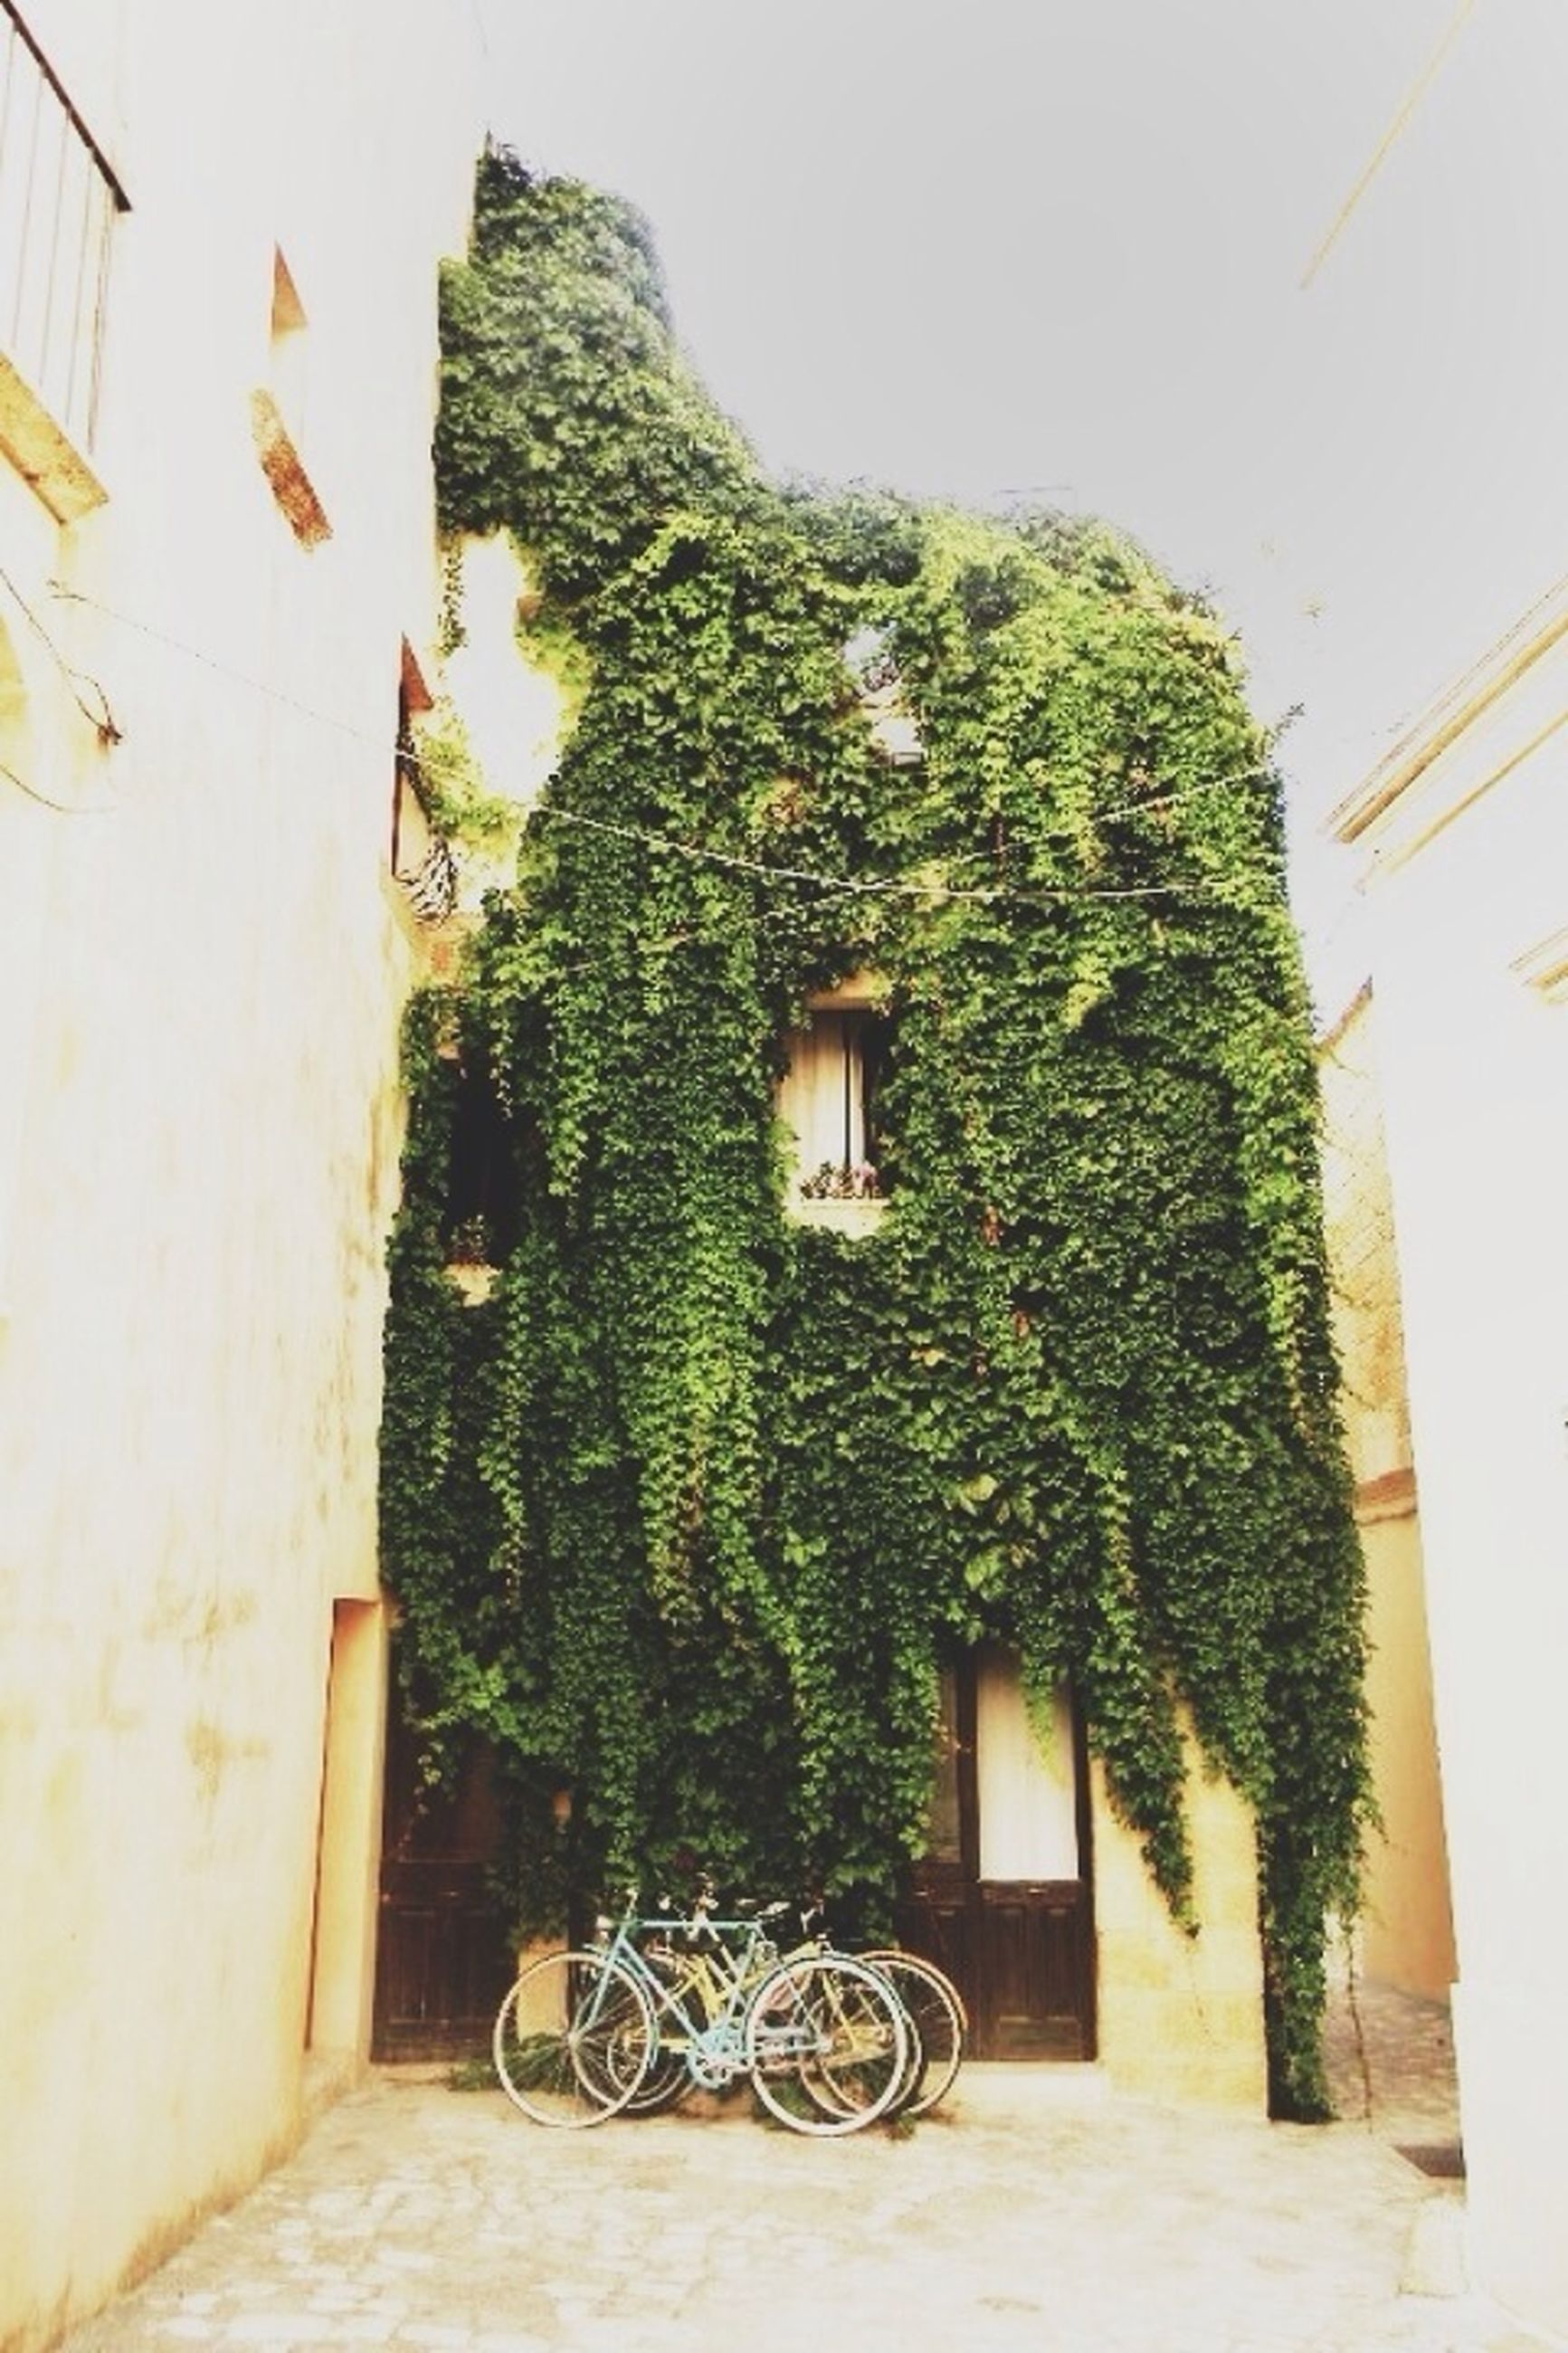 building exterior, built structure, architecture, potted plant, plant, house, growth, bicycle, green color, tree, window, wall - building feature, residential building, wall, residential structure, no people, day, nature, outdoors, flower pot